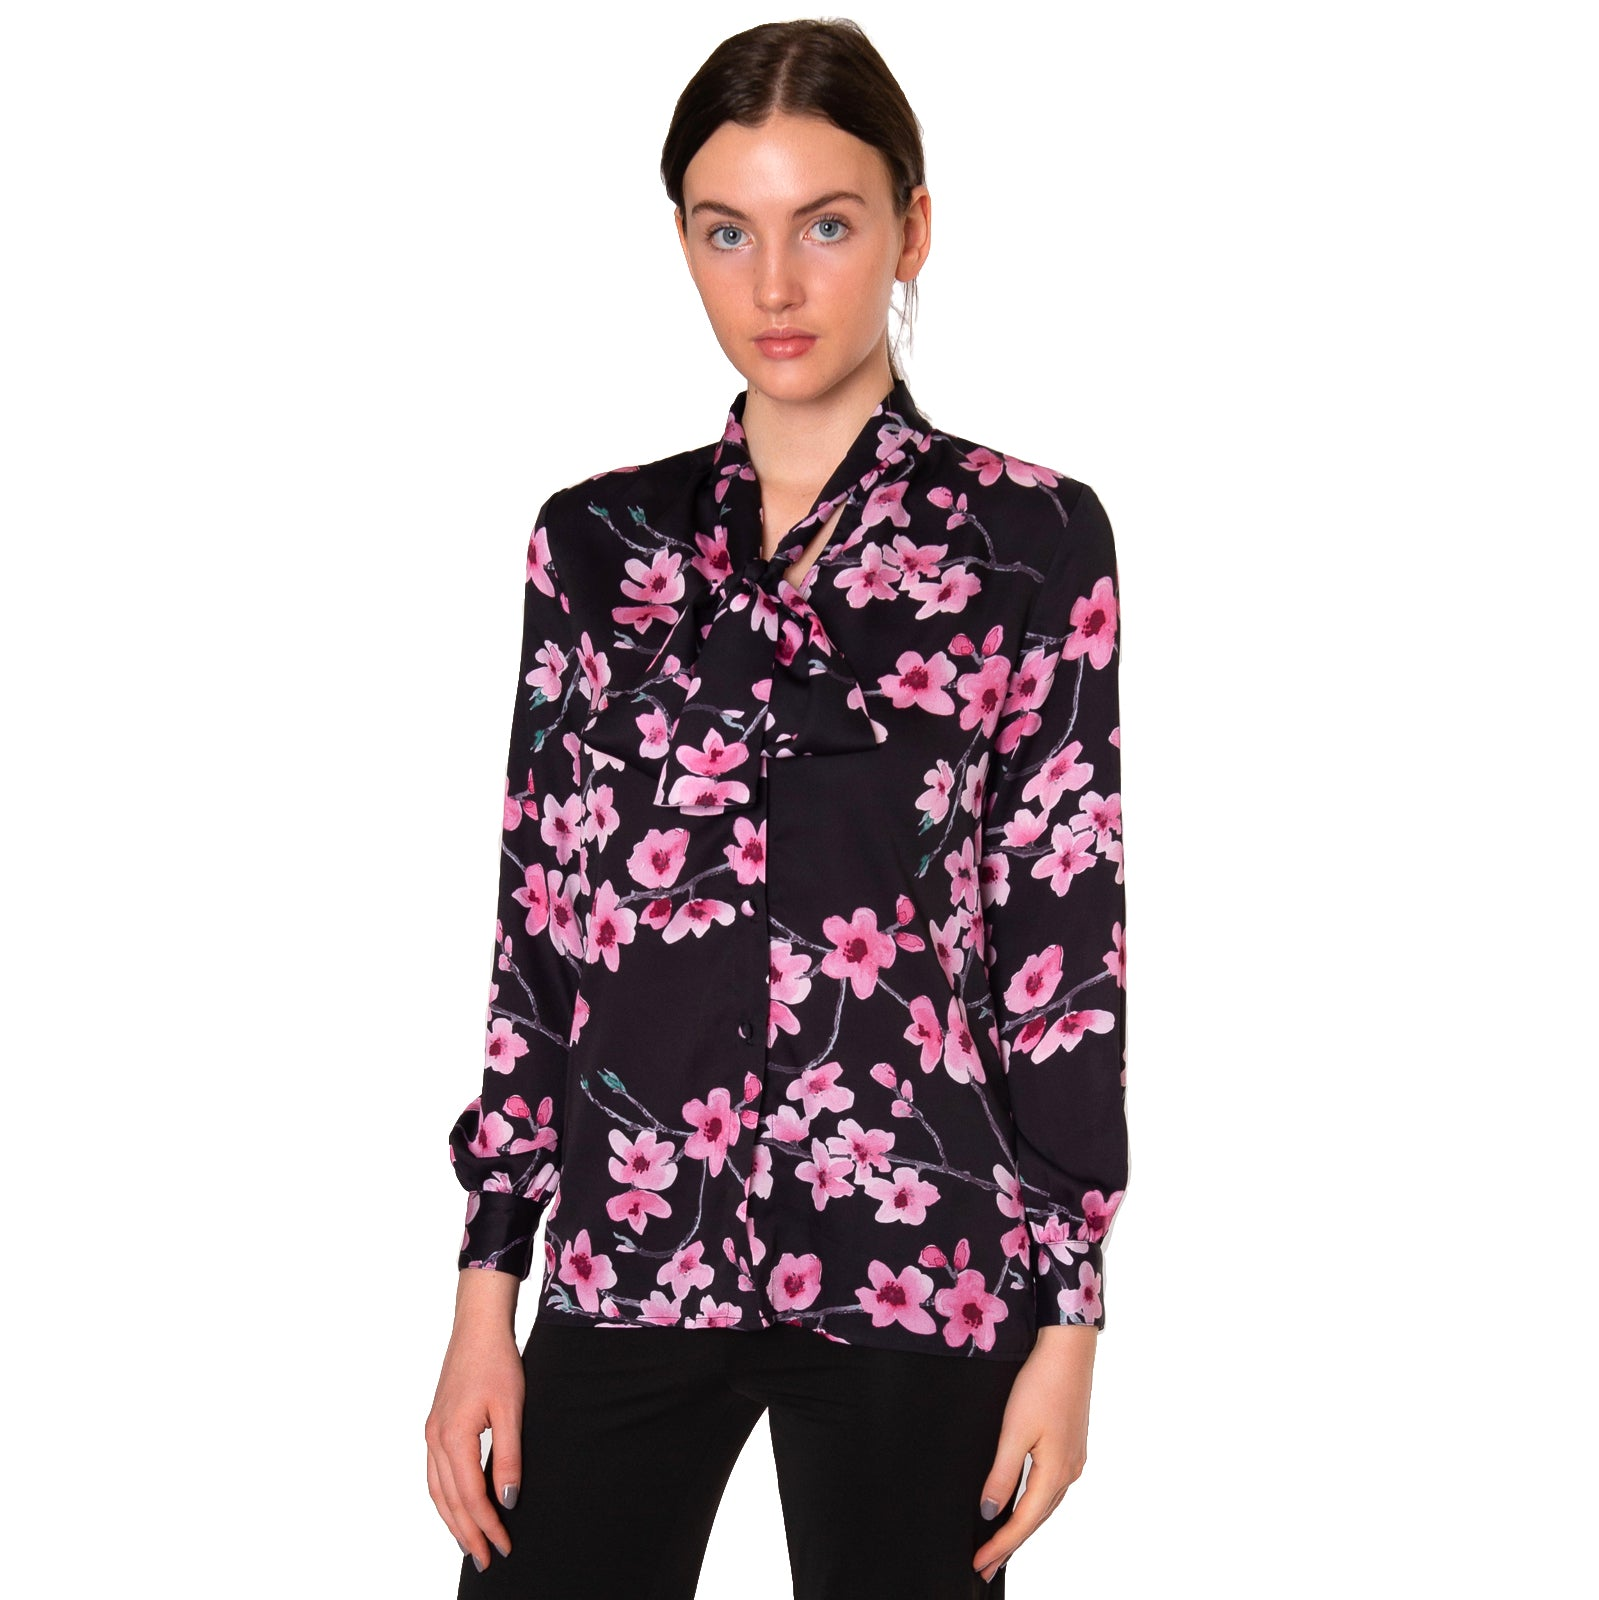 Frani Tie Neck Blouse in Pink Cherry Blossom - Elizabeth Ackerman New York